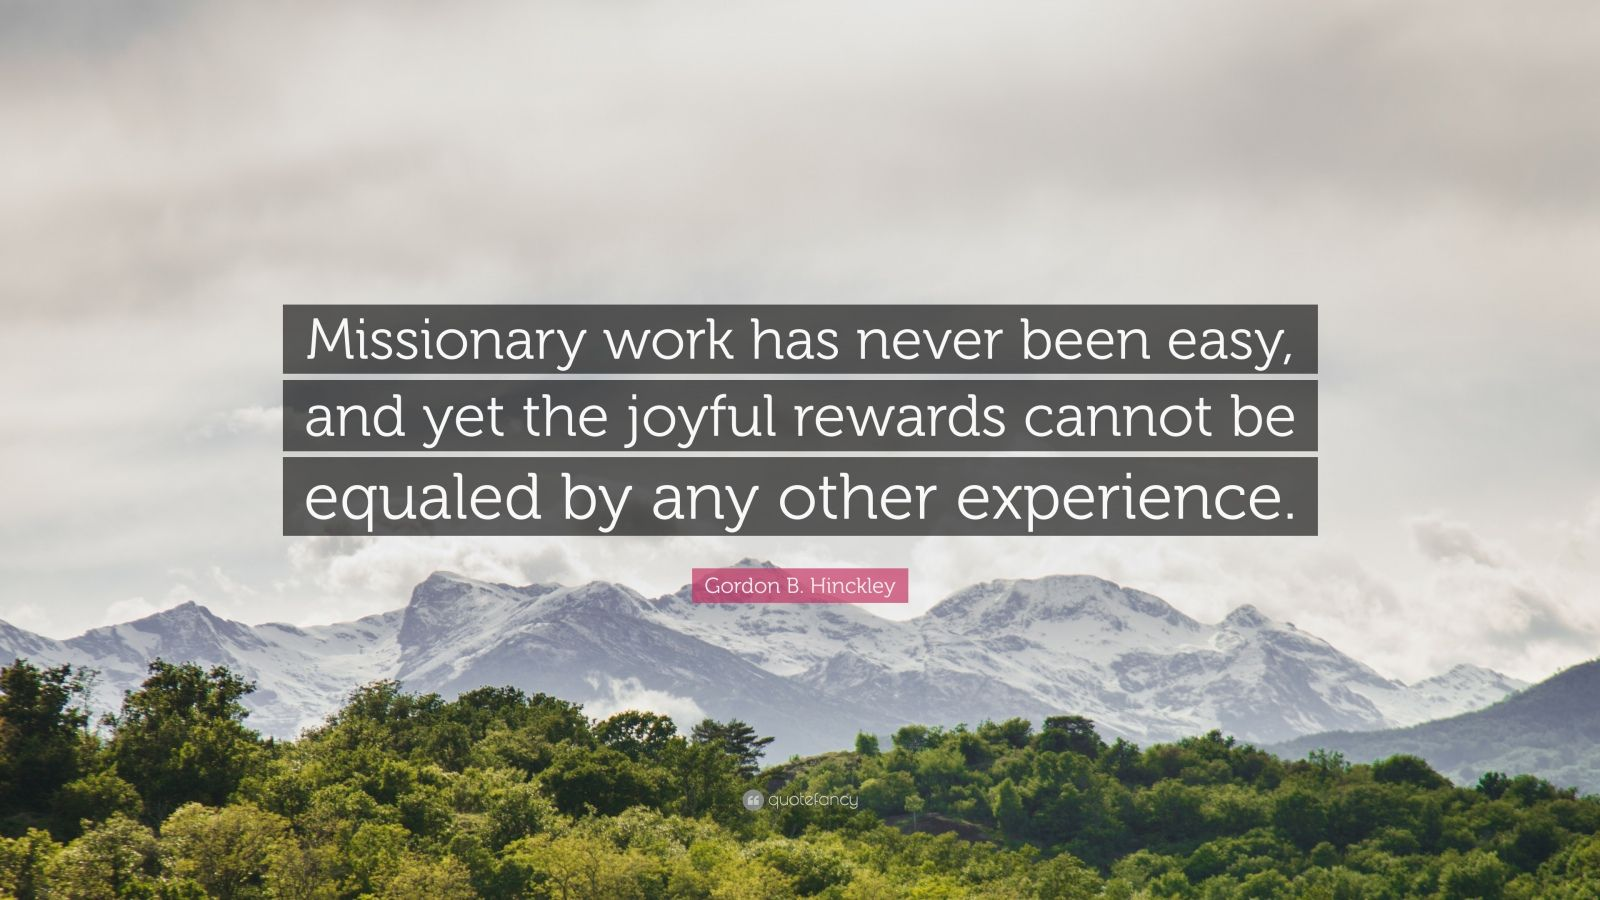 """Gordon B. Hinckley Quote: """"Missionary work has never been easy, and yet the joyful rewards cannot be equaled by any other experience."""""""